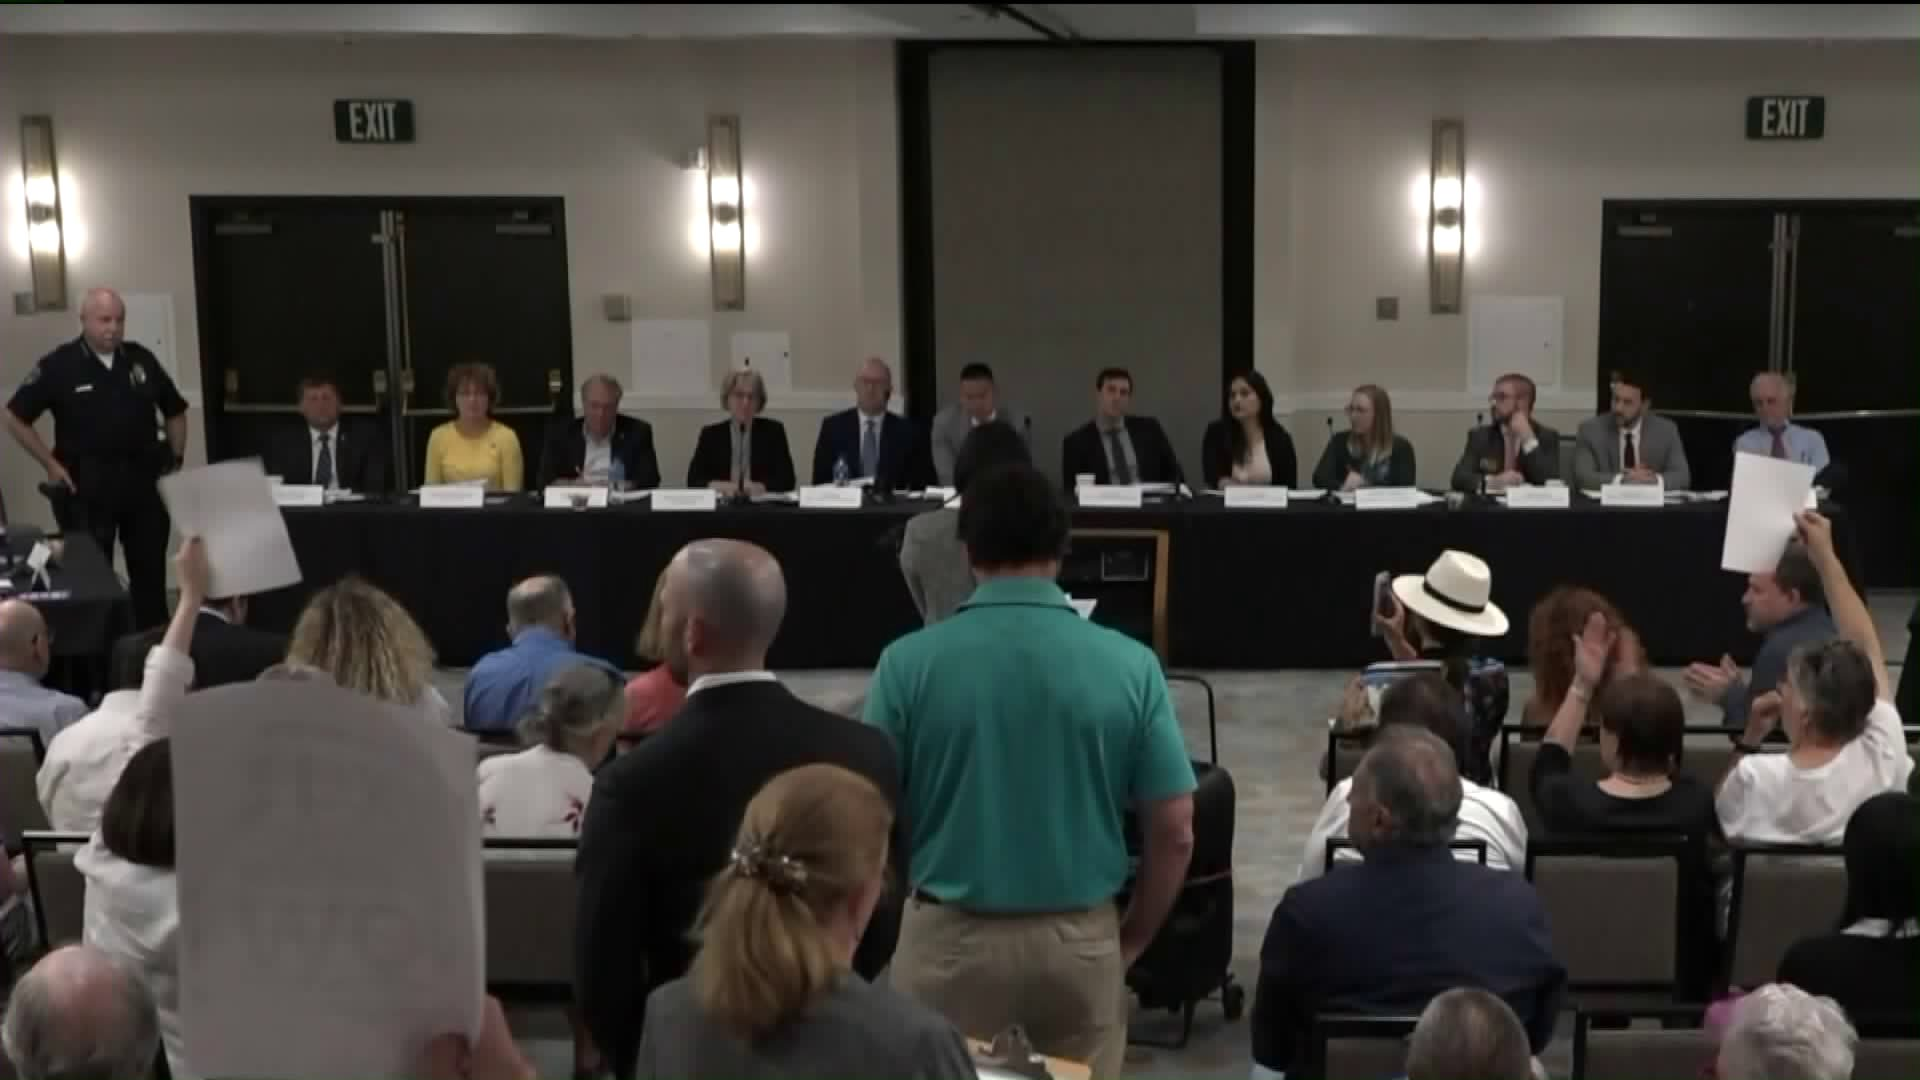 Burbank residents discuss noise issues at Bob Hope Airport with FAA officials at a meeting on Aug. 28, 2019. (Credit: KTLA)